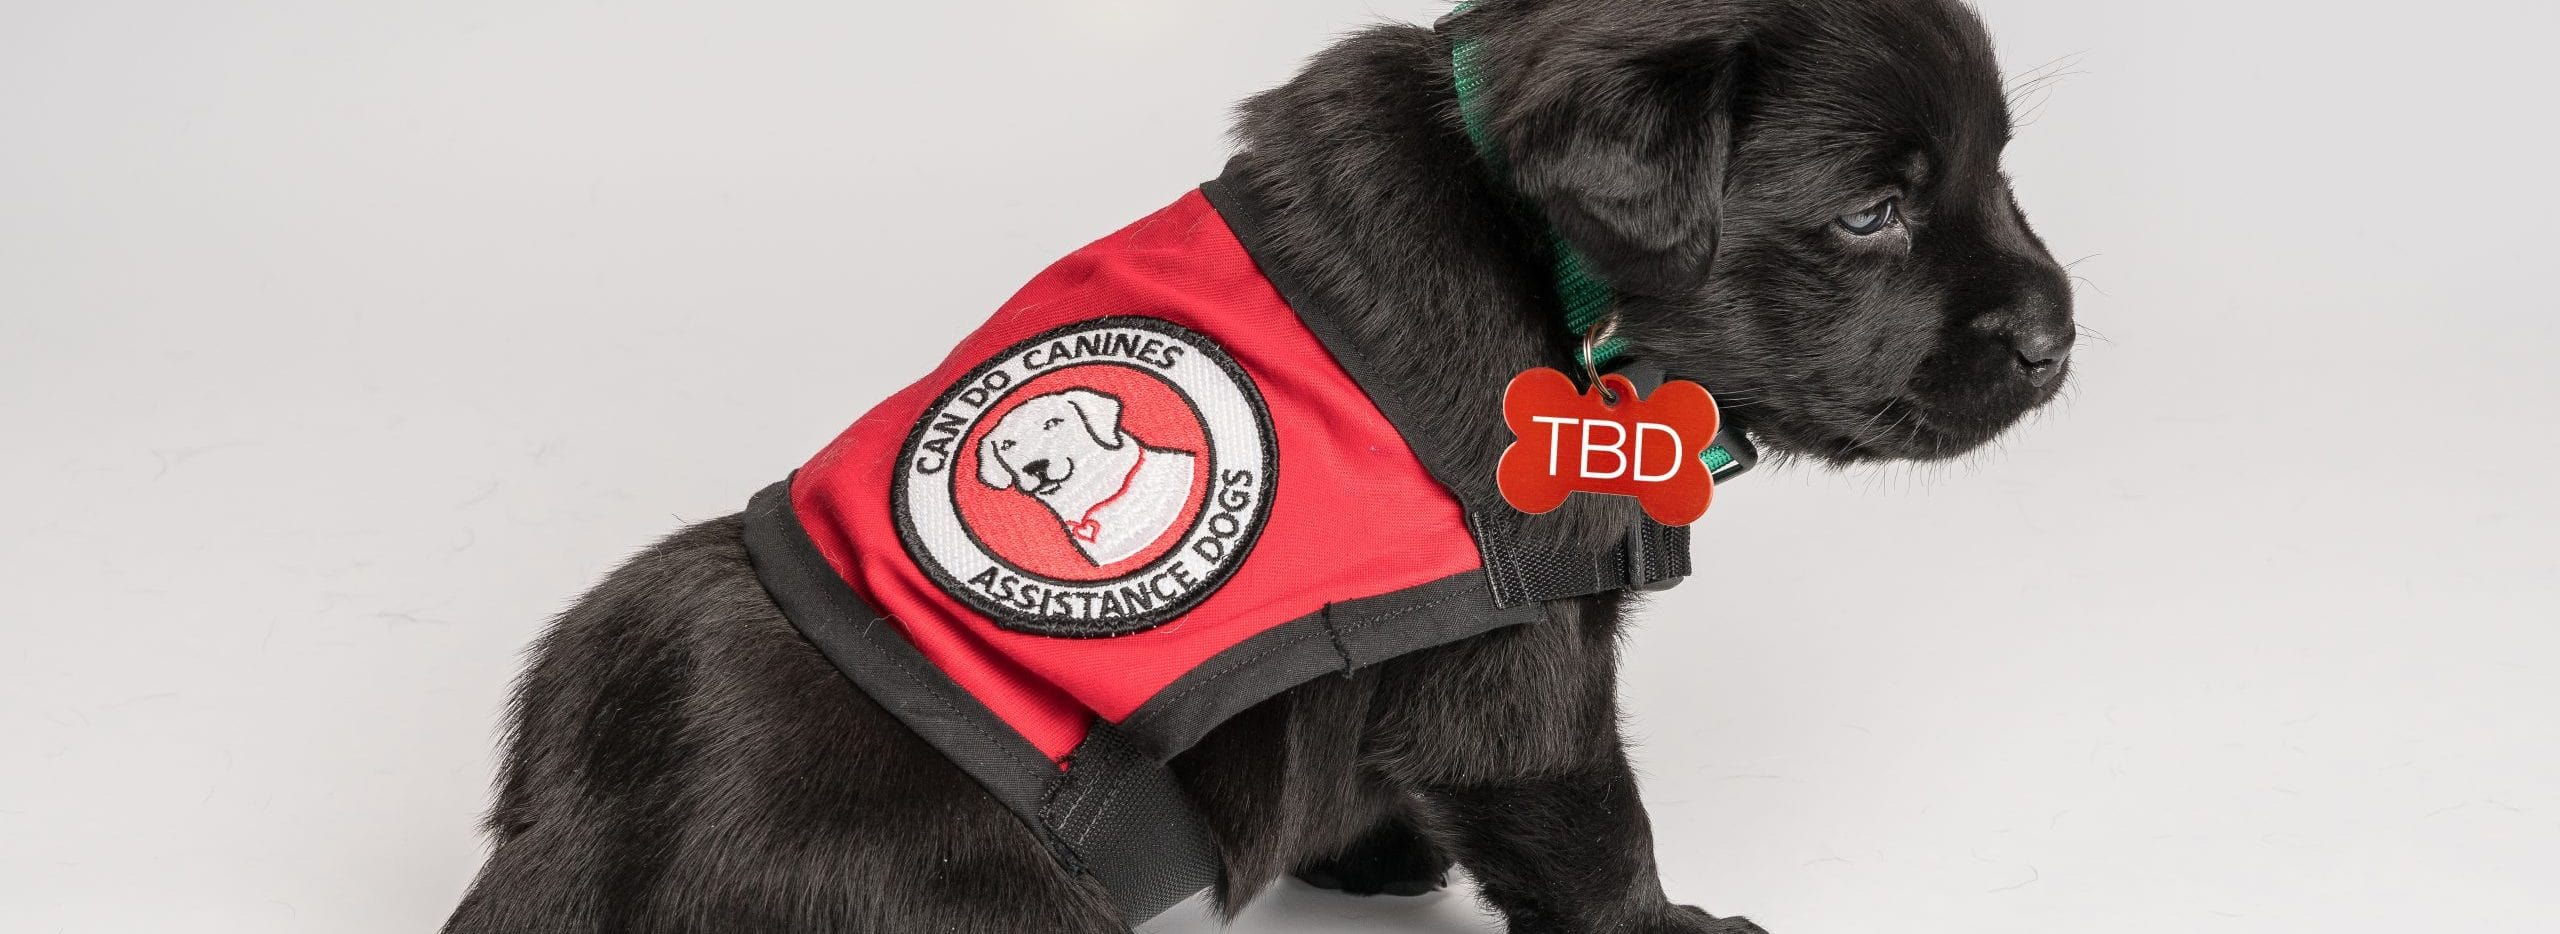 Puppy with TBD dog tag on it's collar